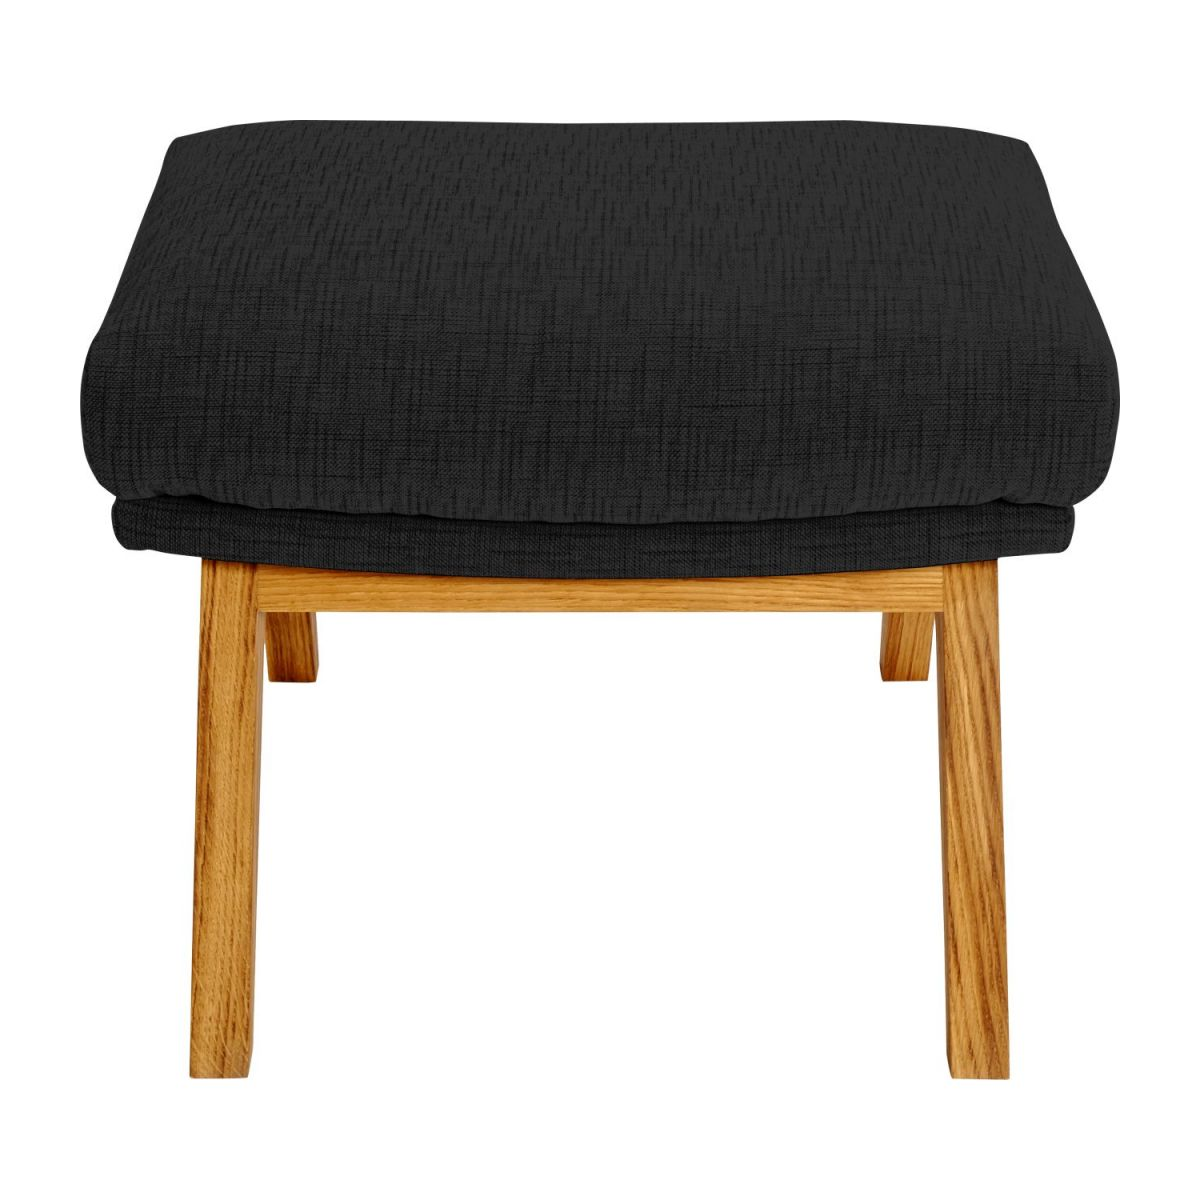 Footstool in Ancio fabric, nero with oak legs n°2